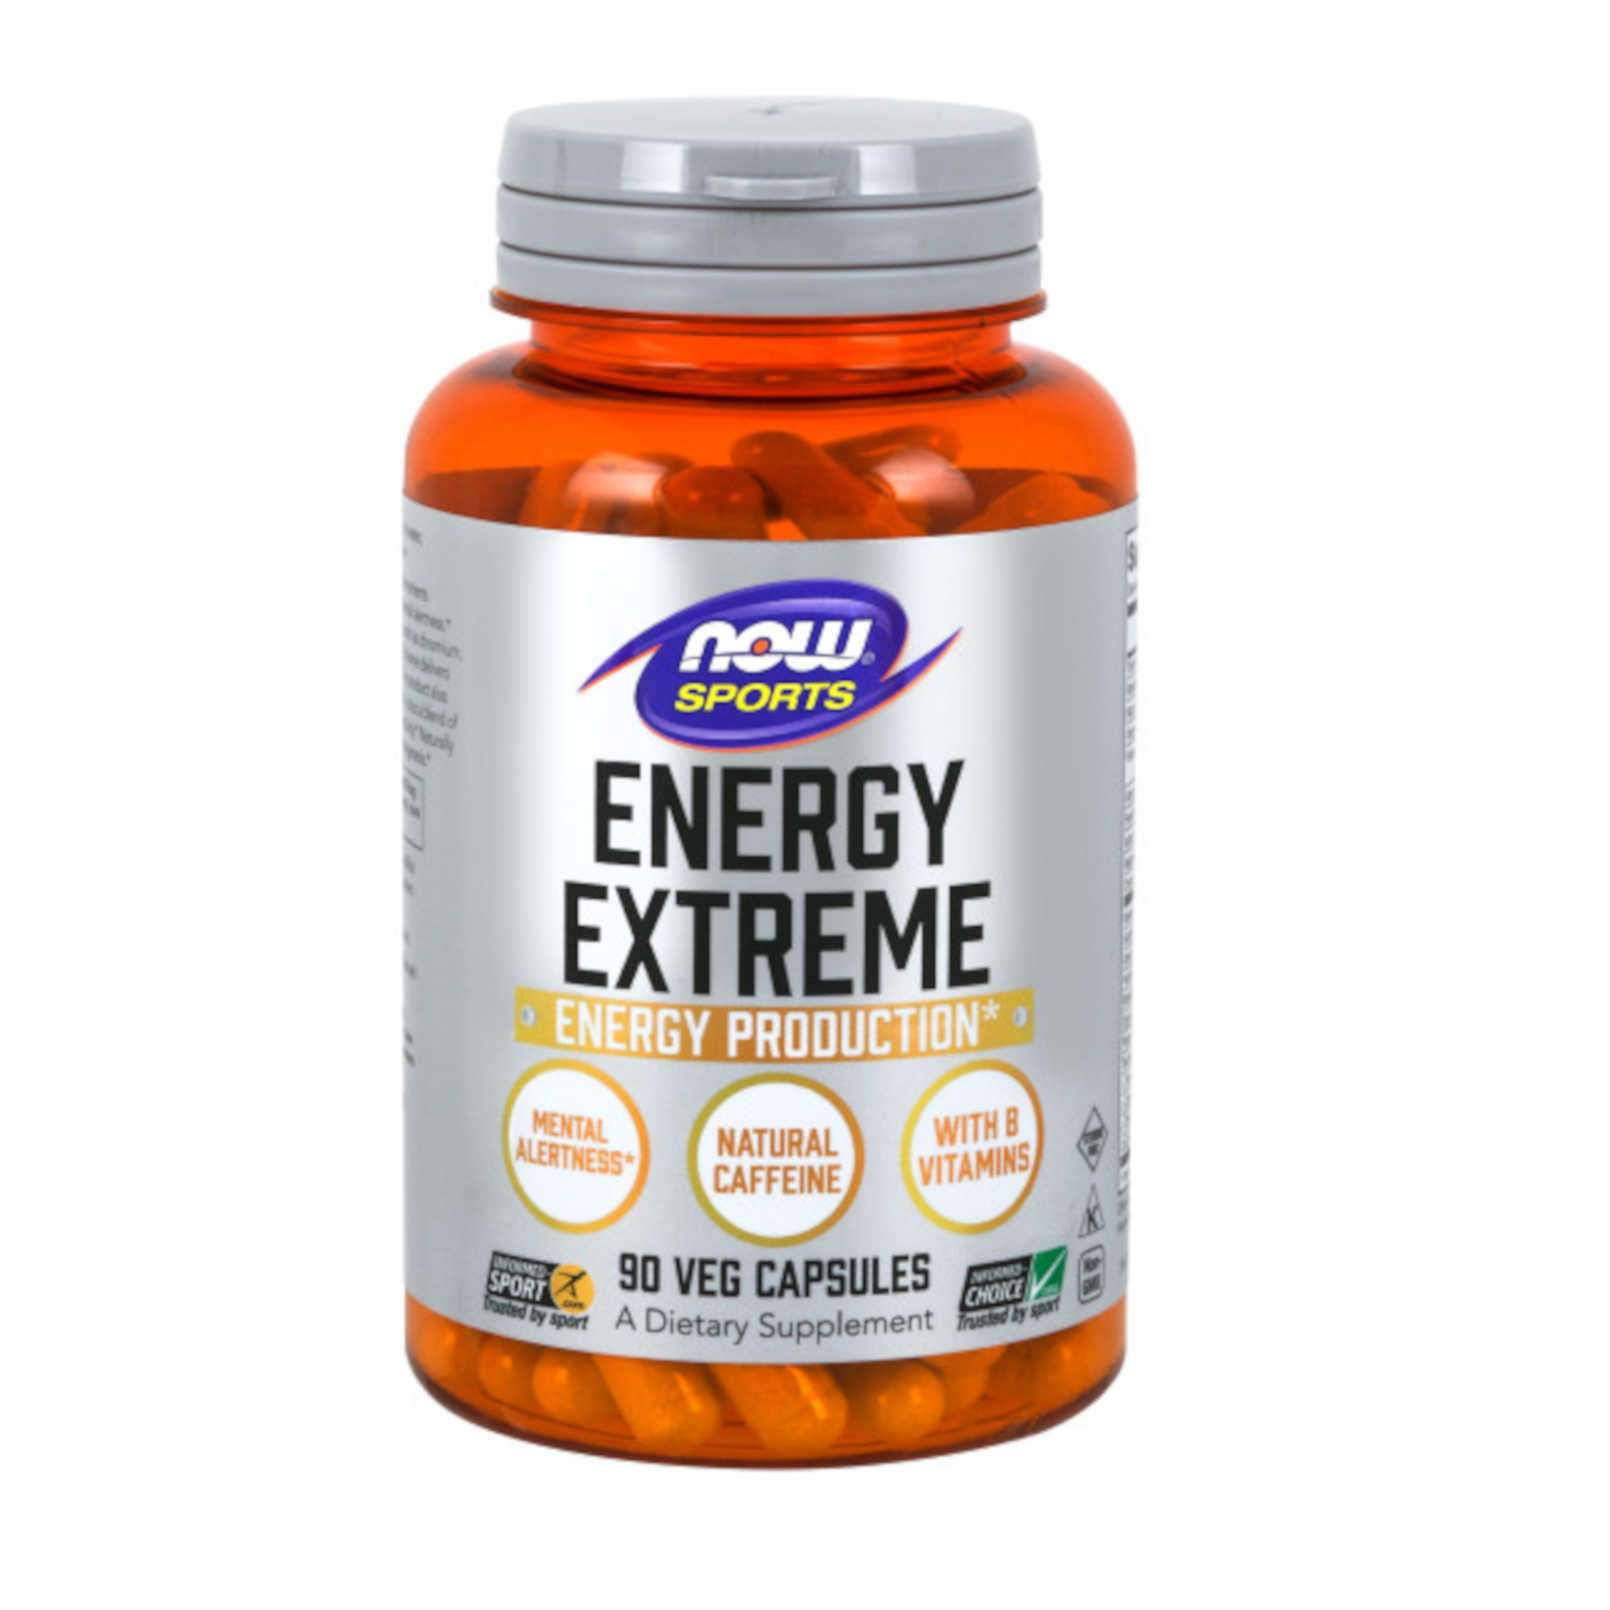 SPORTS ENERGY EXTREME - 90 veg caps